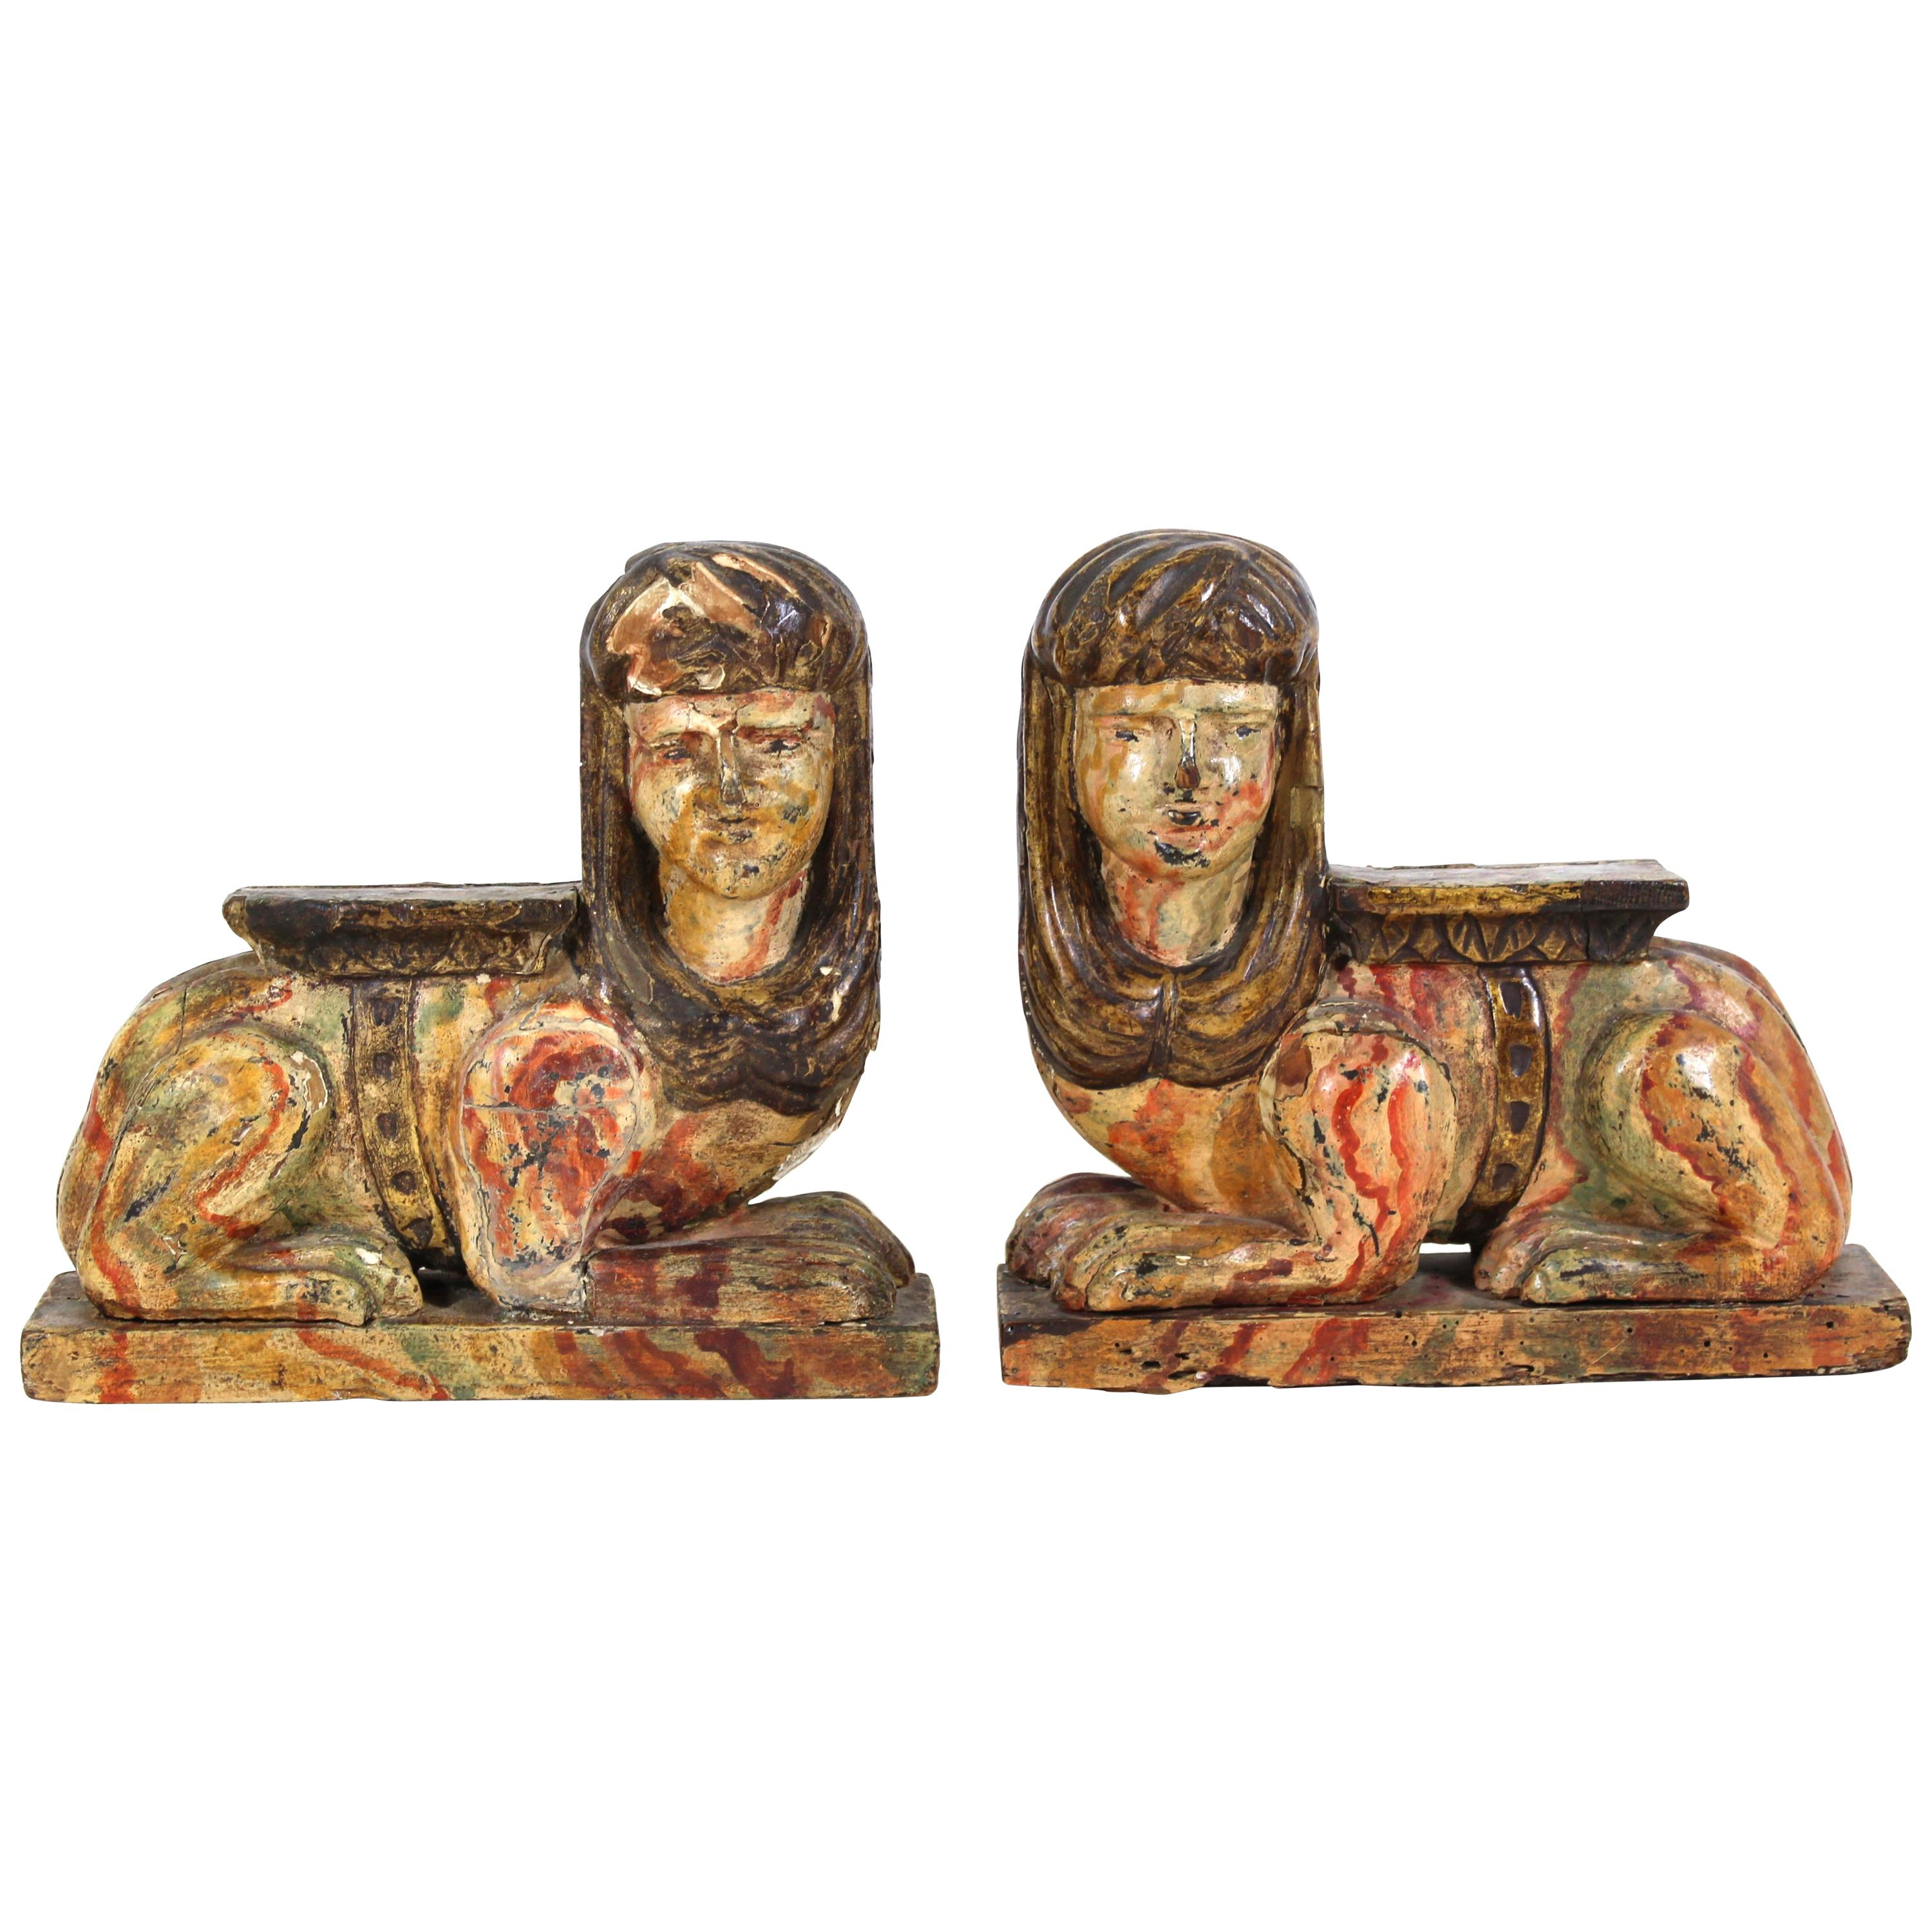 Egyptian Revival Carved & Painted Wood Sphinxes